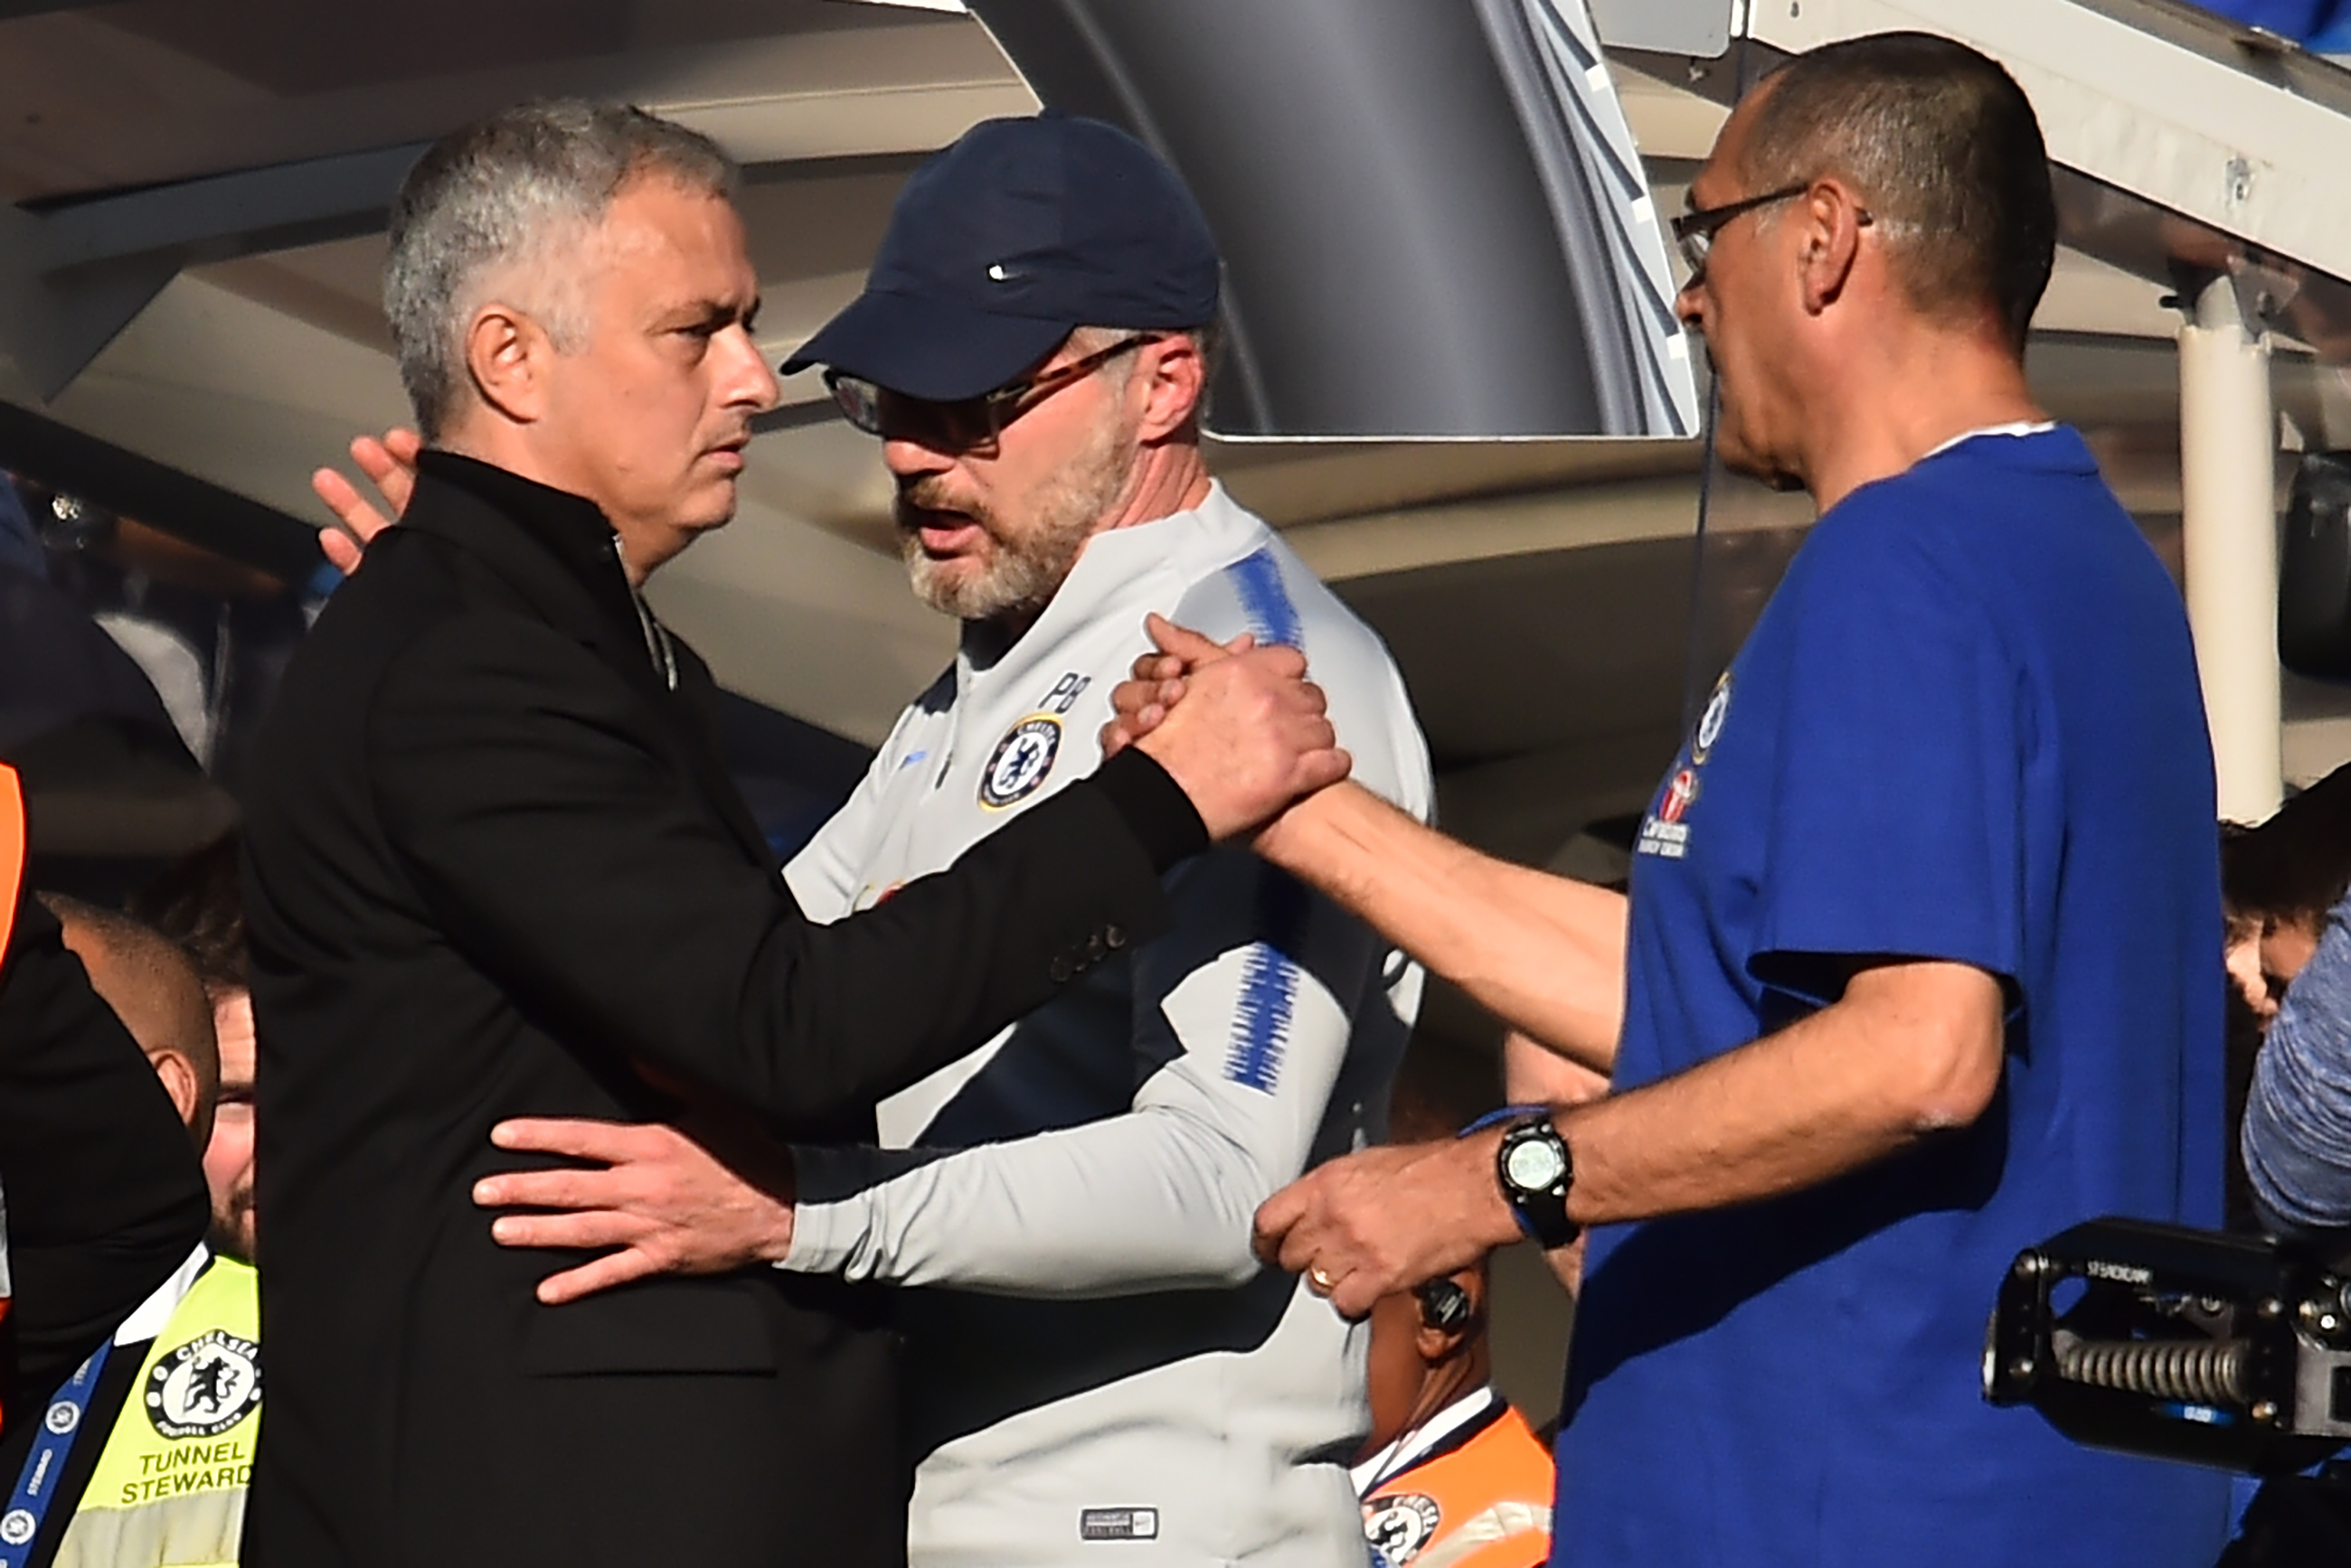 Jose Mourinho accepts apology from Chelsea coach Marco Ianni for celebration